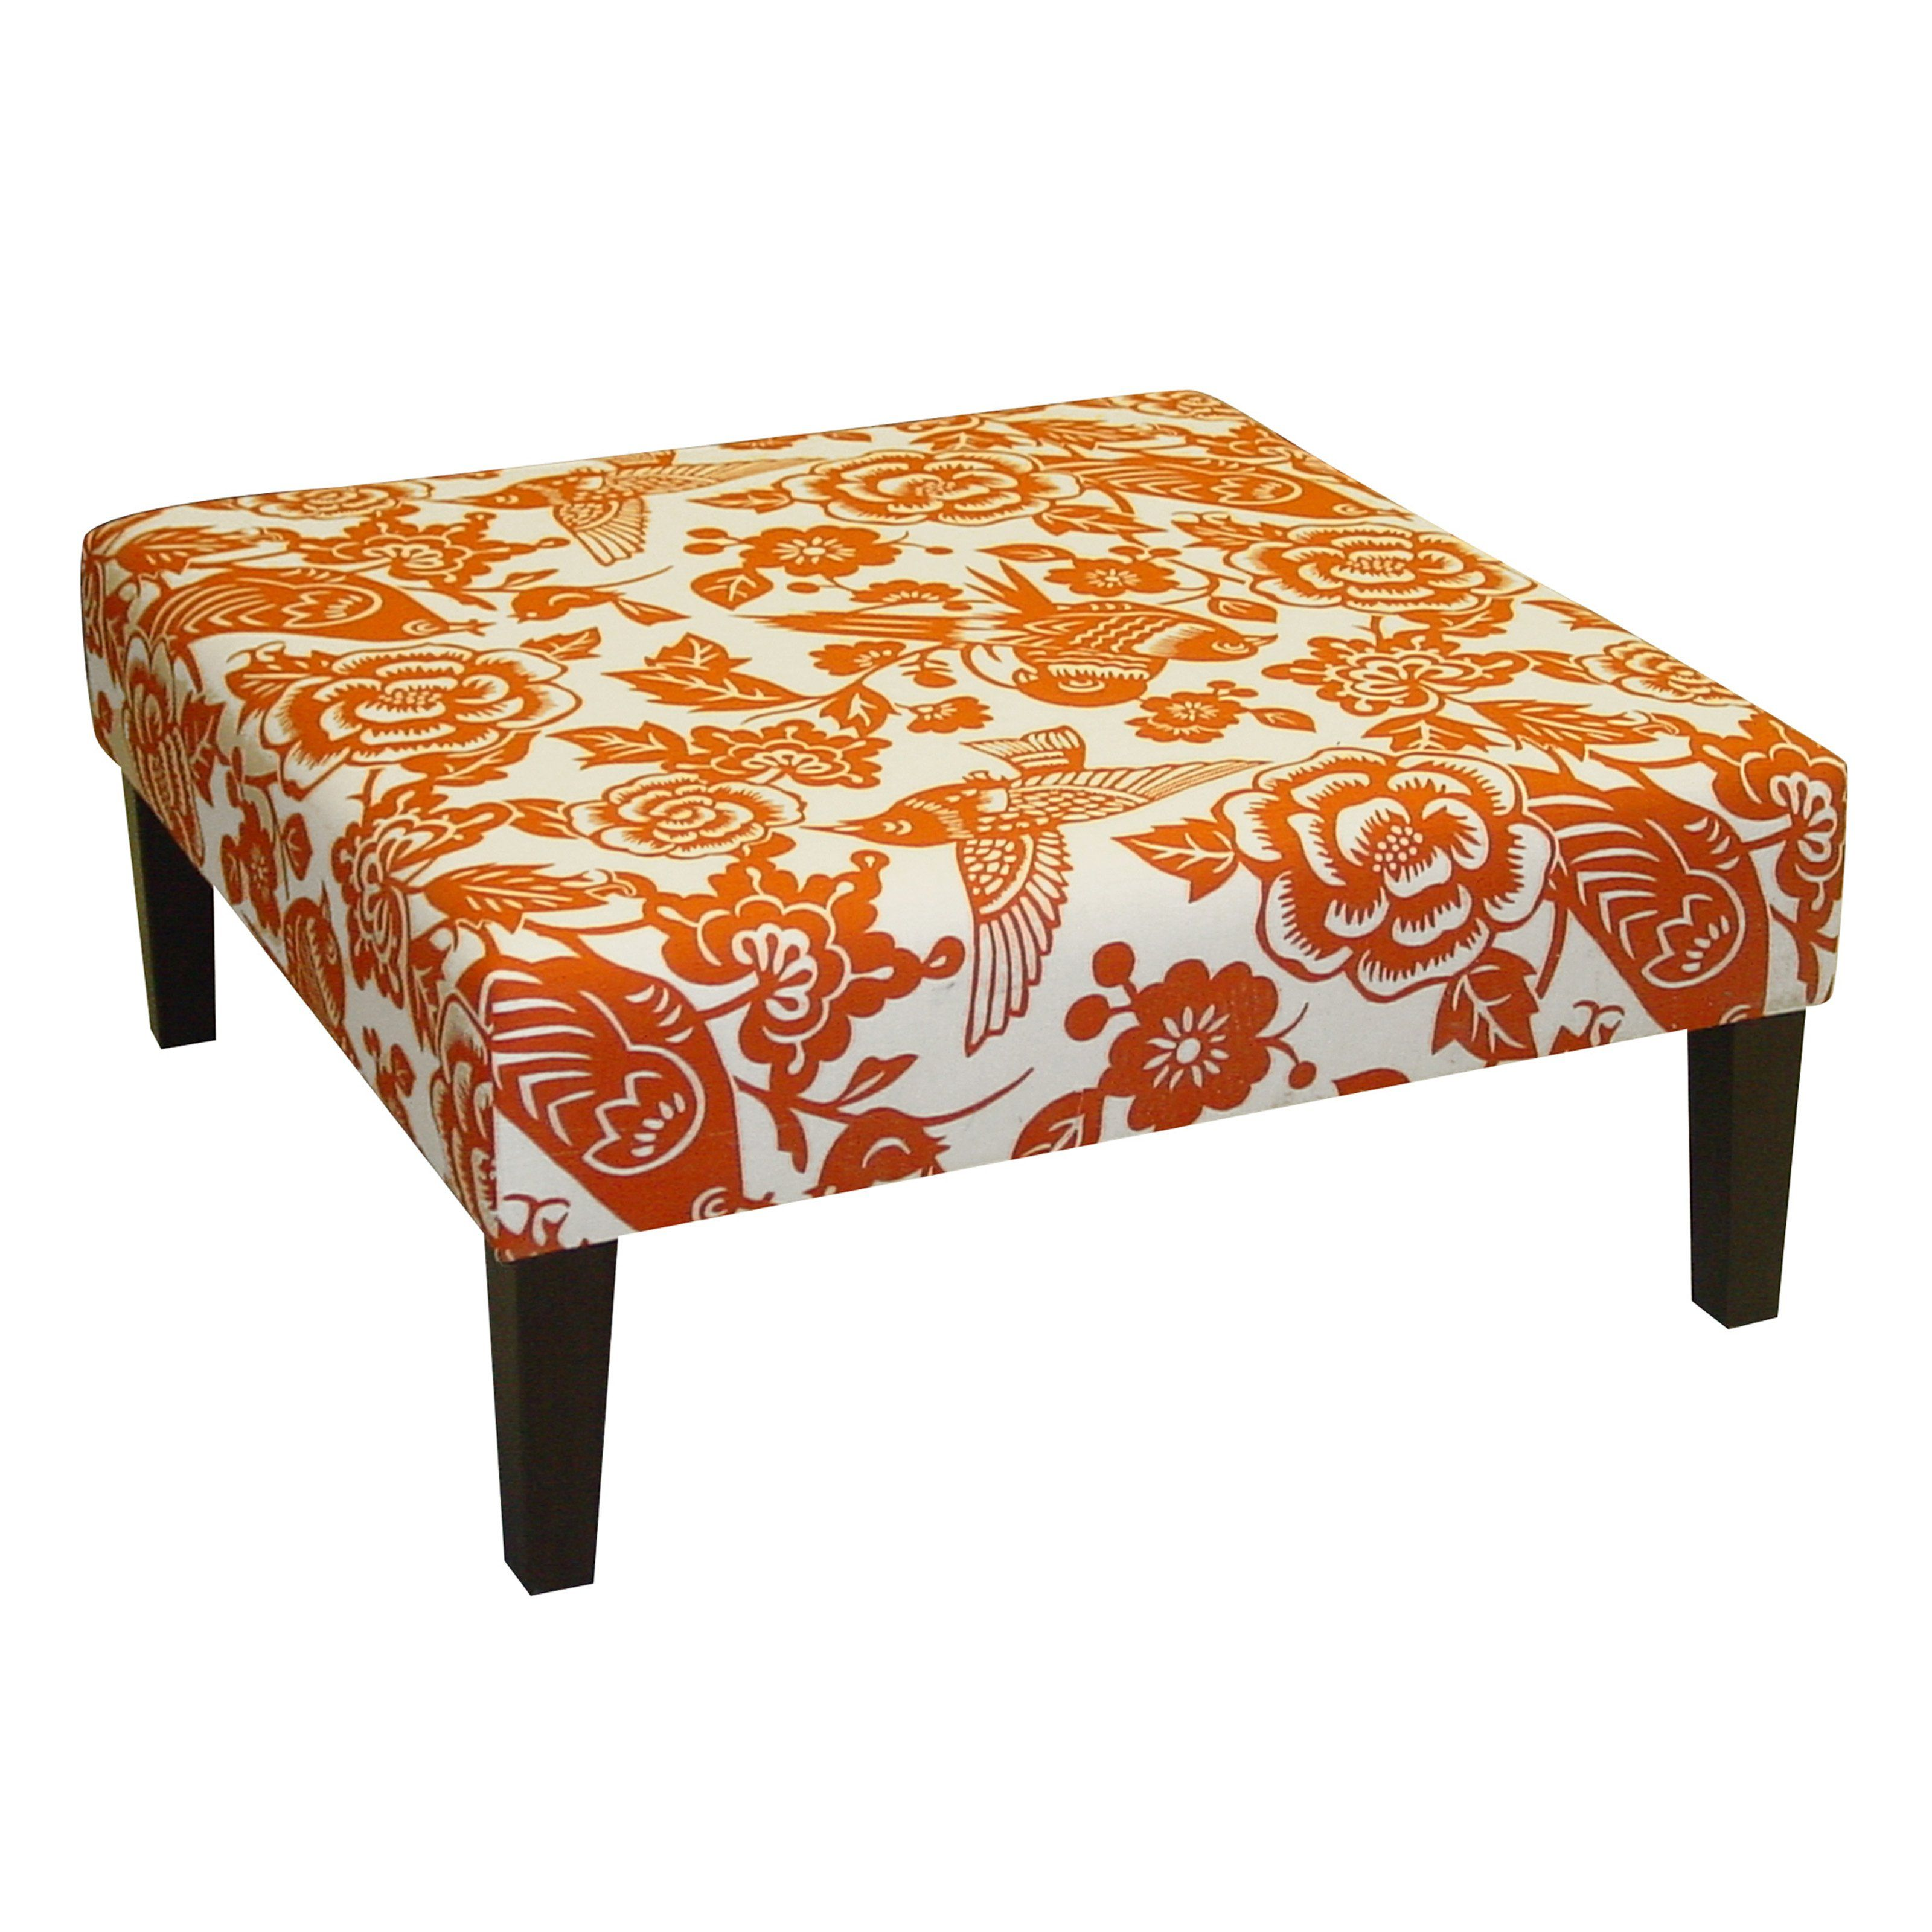 Skyline Furniture Cocktail Ottoman   Canary Tangerine | From Hayneedle.com